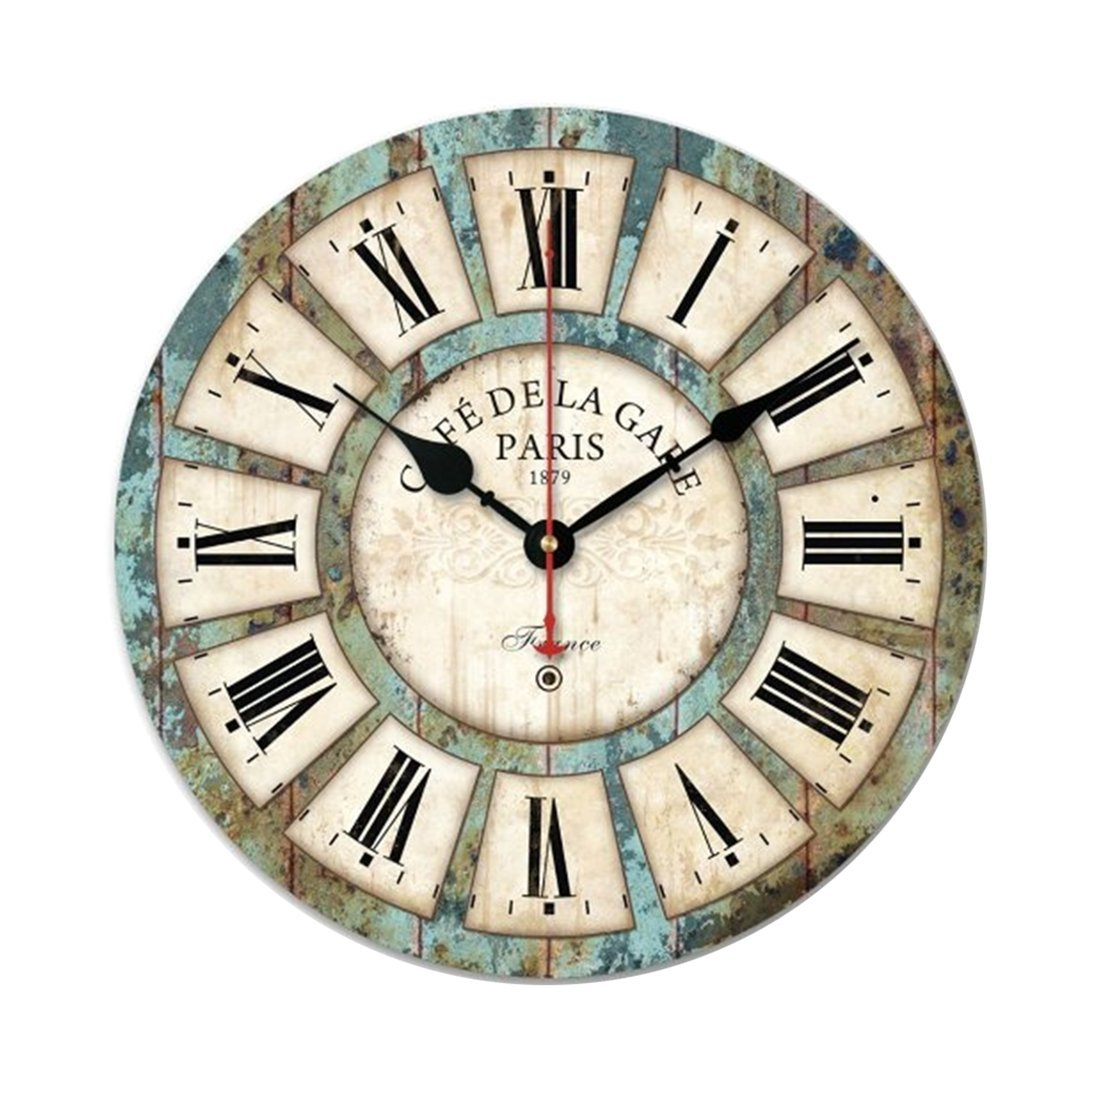 Amazon 14 inch vintage rustic country tuscan style silent amazon 14 inch vintage rustic country tuscan style silent wooden wall clock home decor white home kitchen amipublicfo Image collections